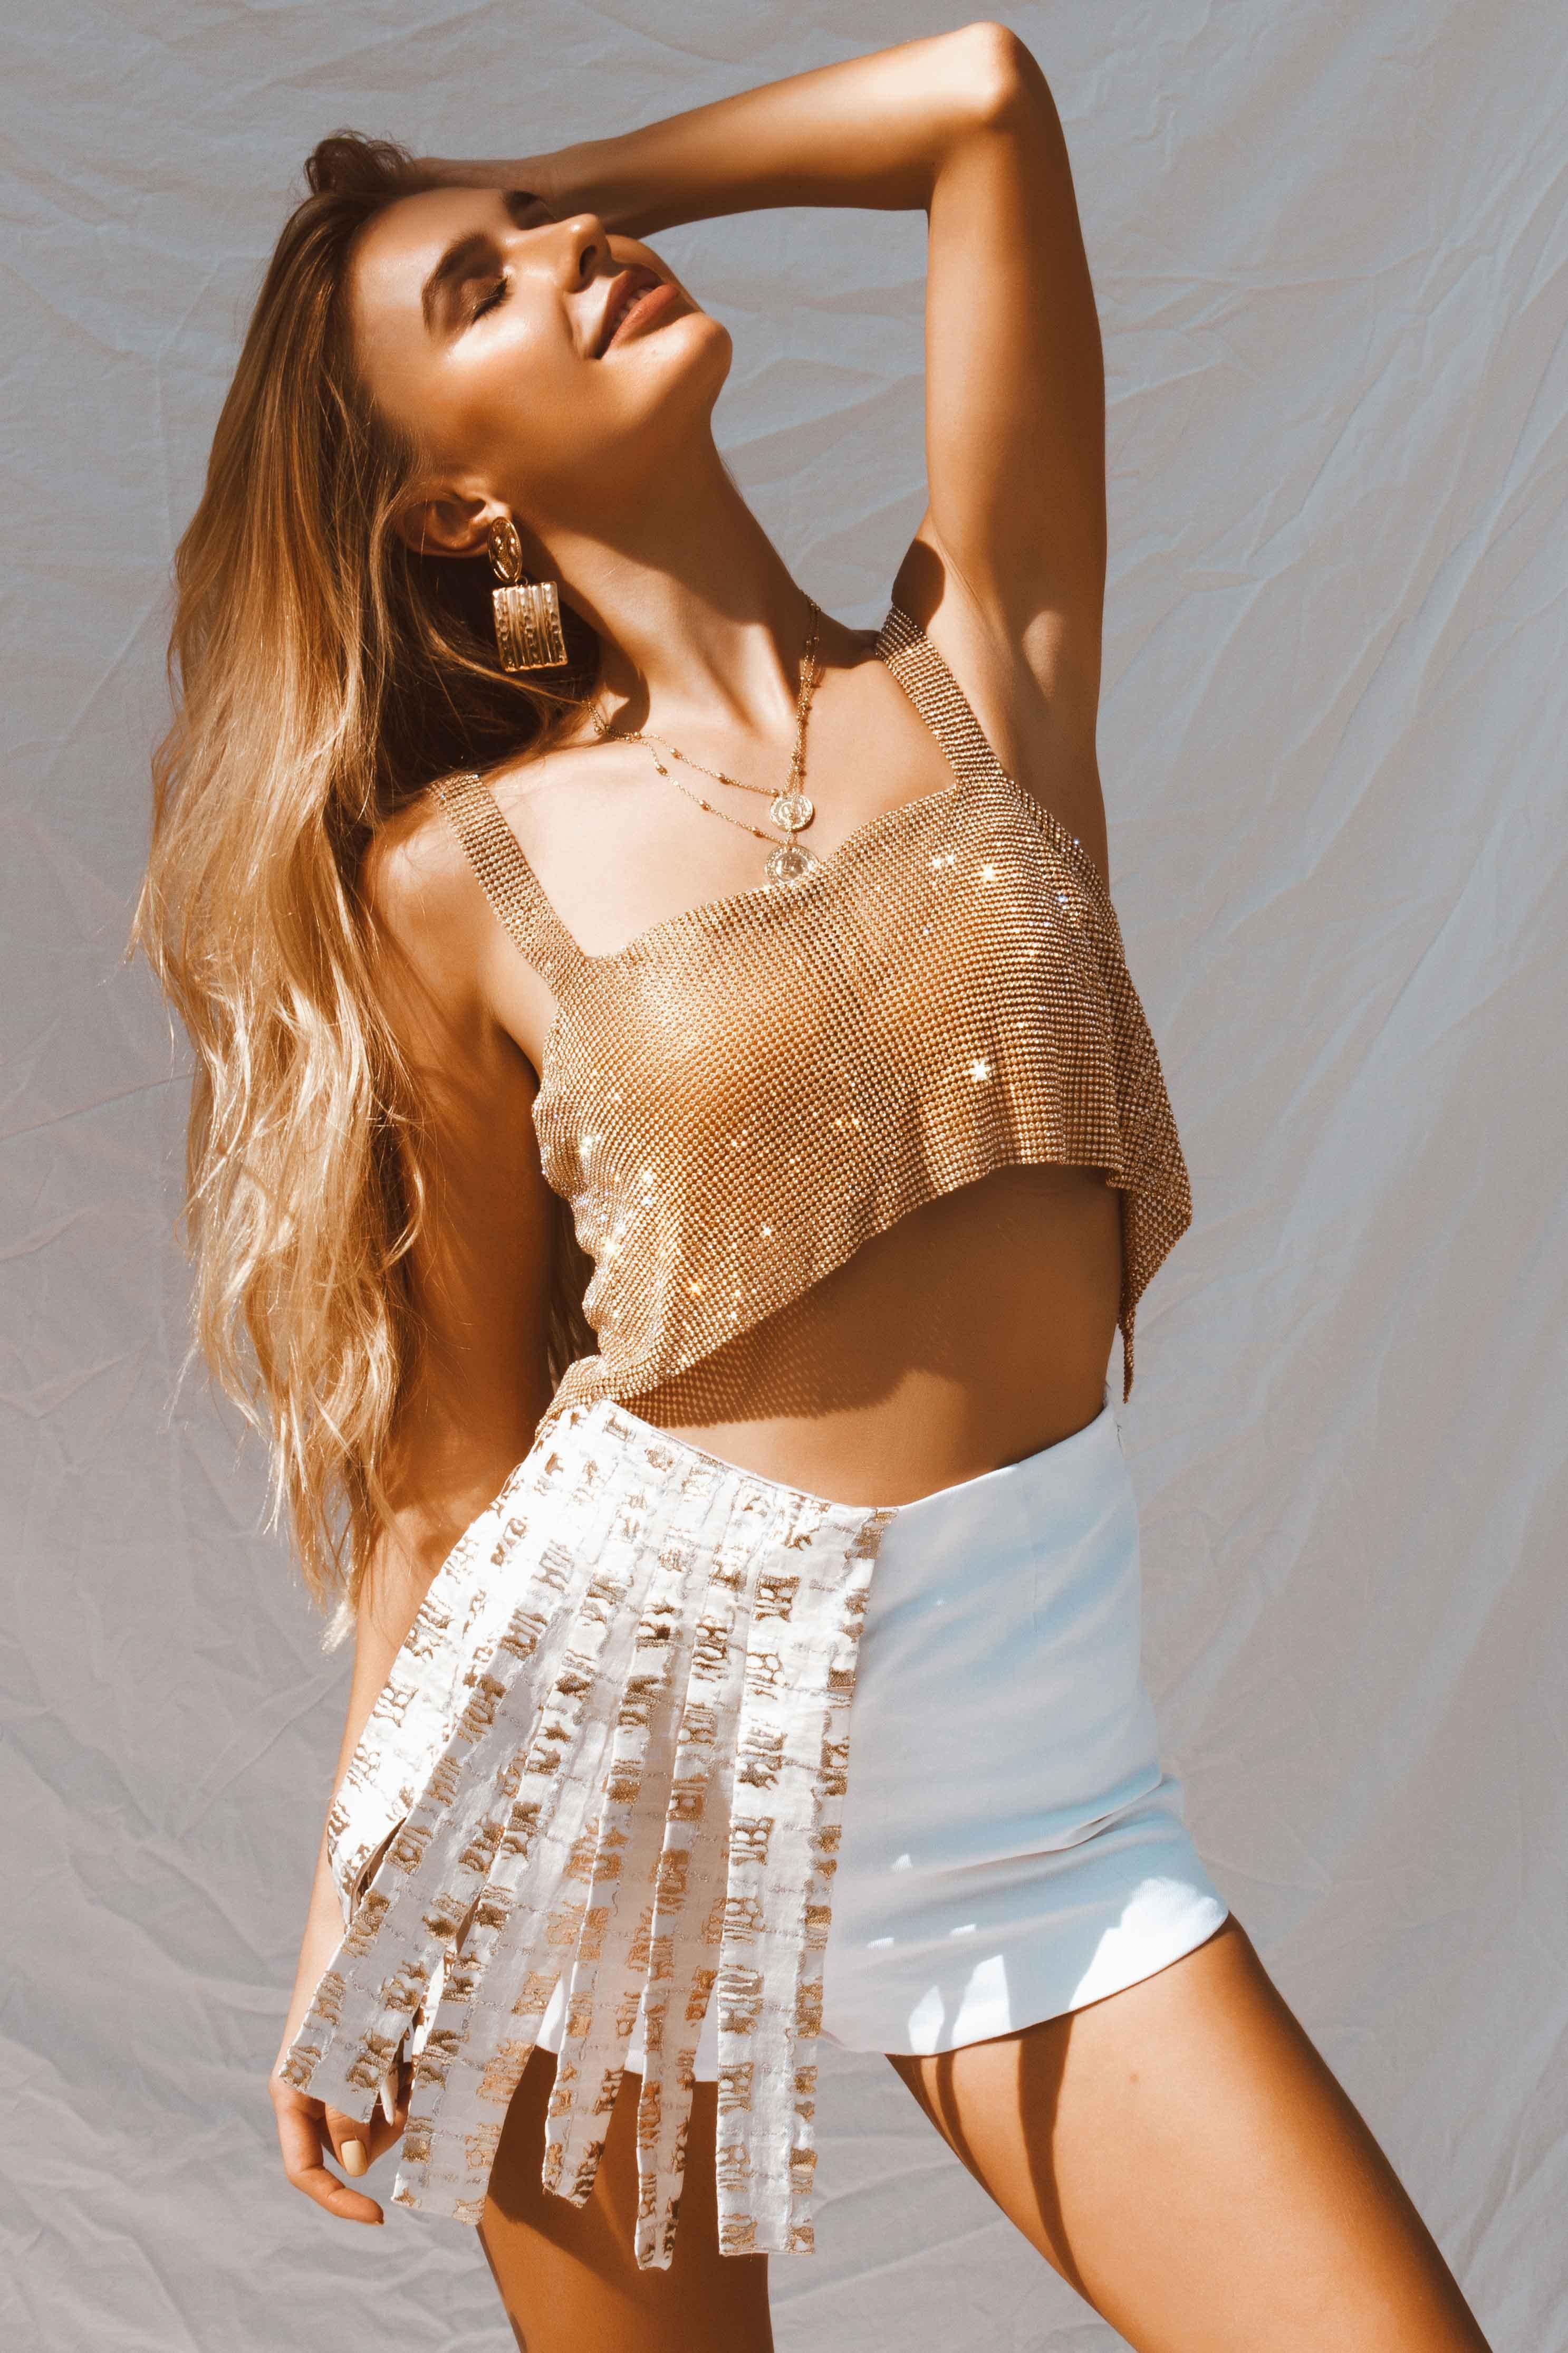 ALL FRINGED UP - SHORTS | Women's Online Shopping | CHICLEFRIQUE